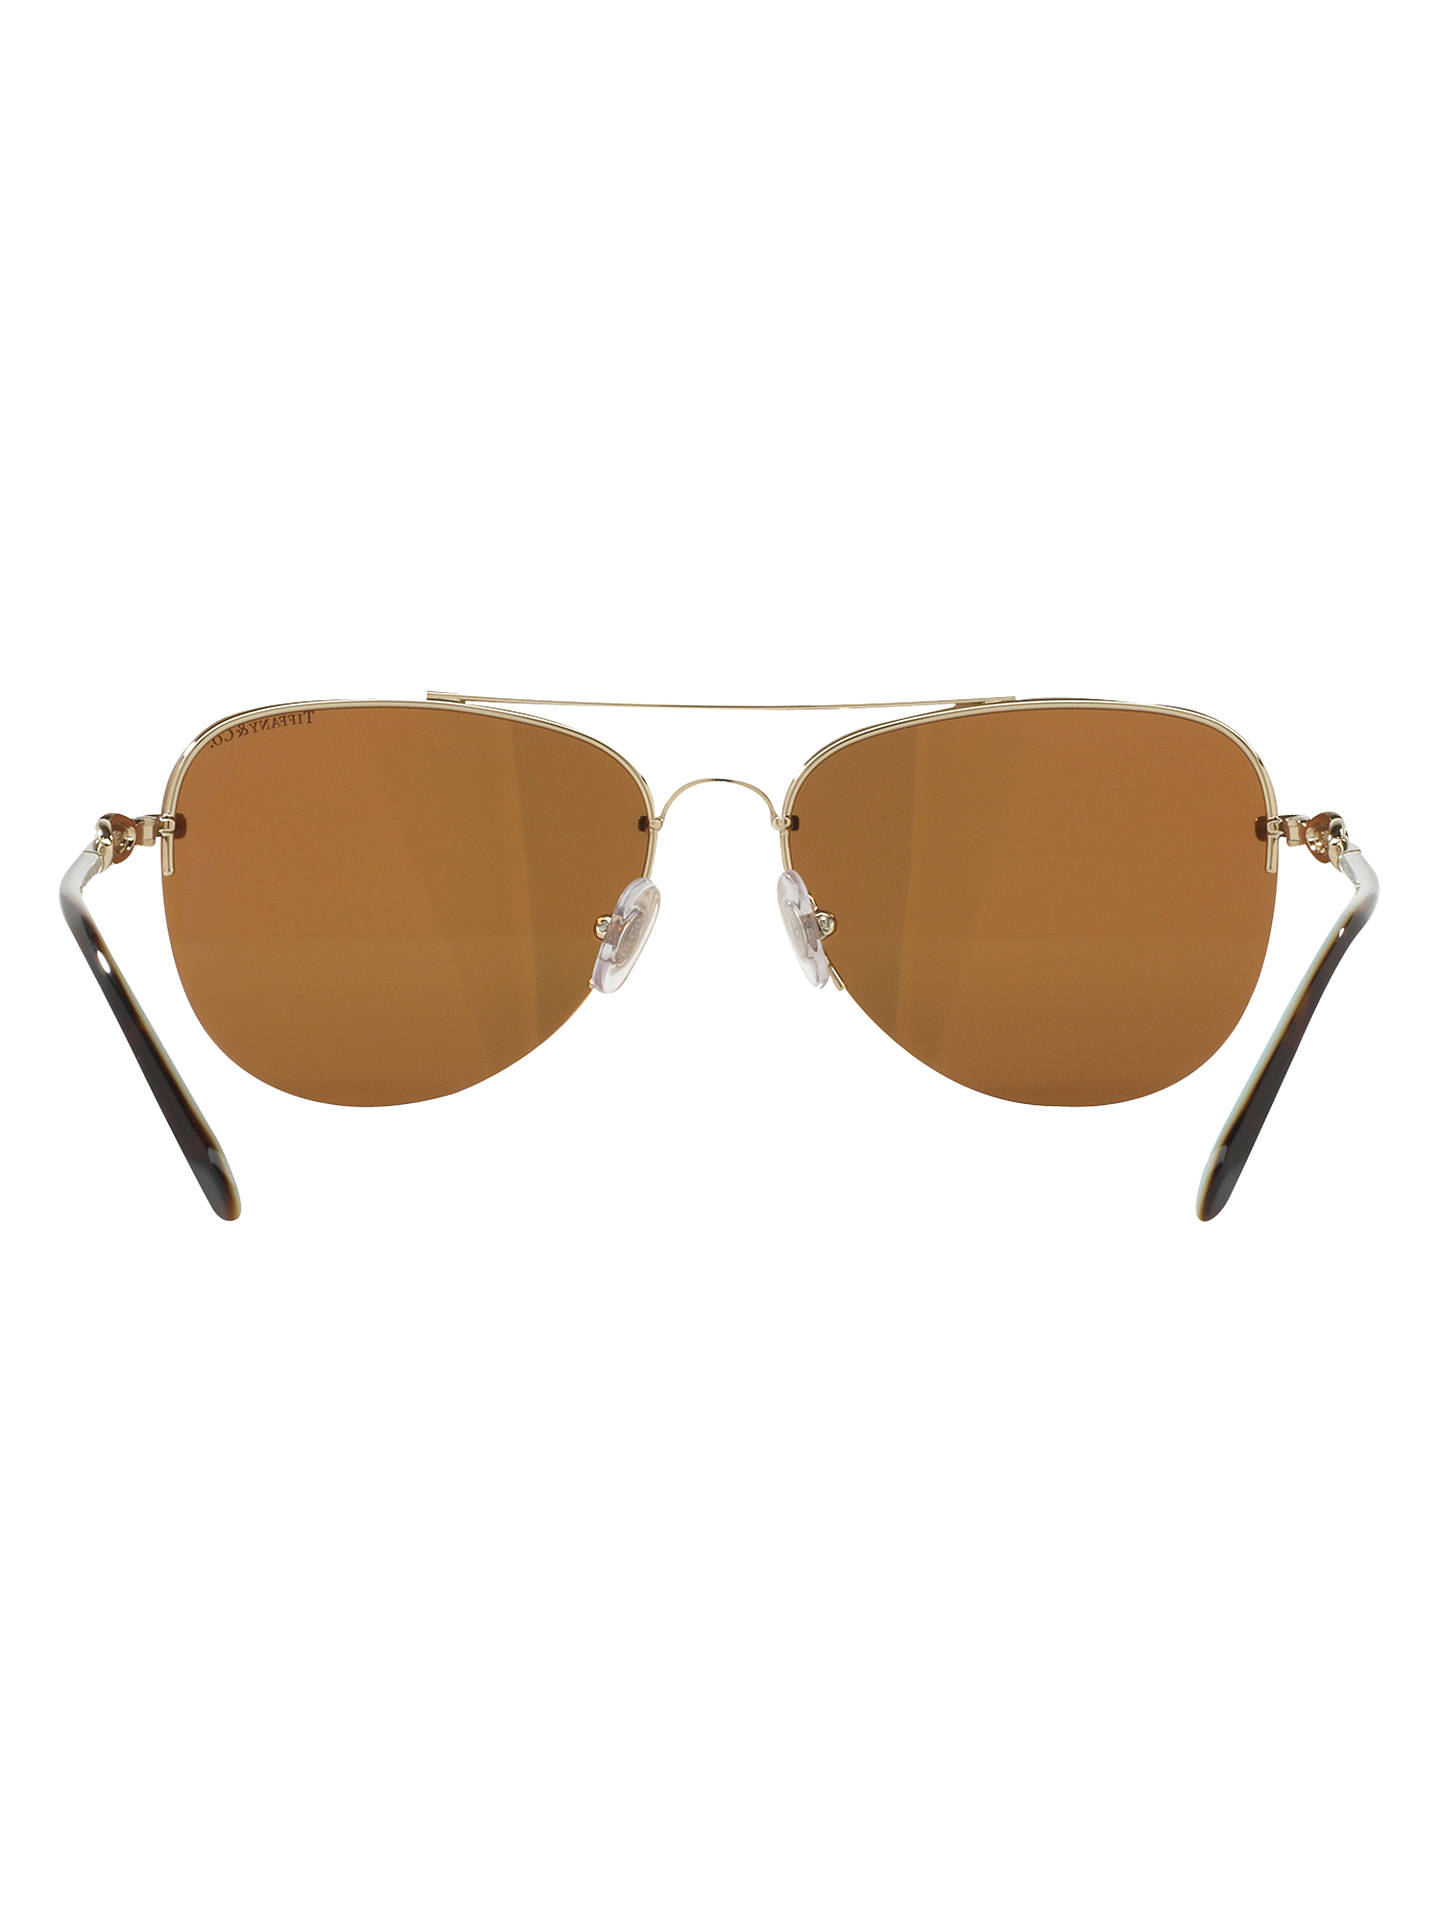 BuyTiffany & Co TF3054B Embellished Aviator Sunglasses, Gold/Beige Online at johnlewis.com